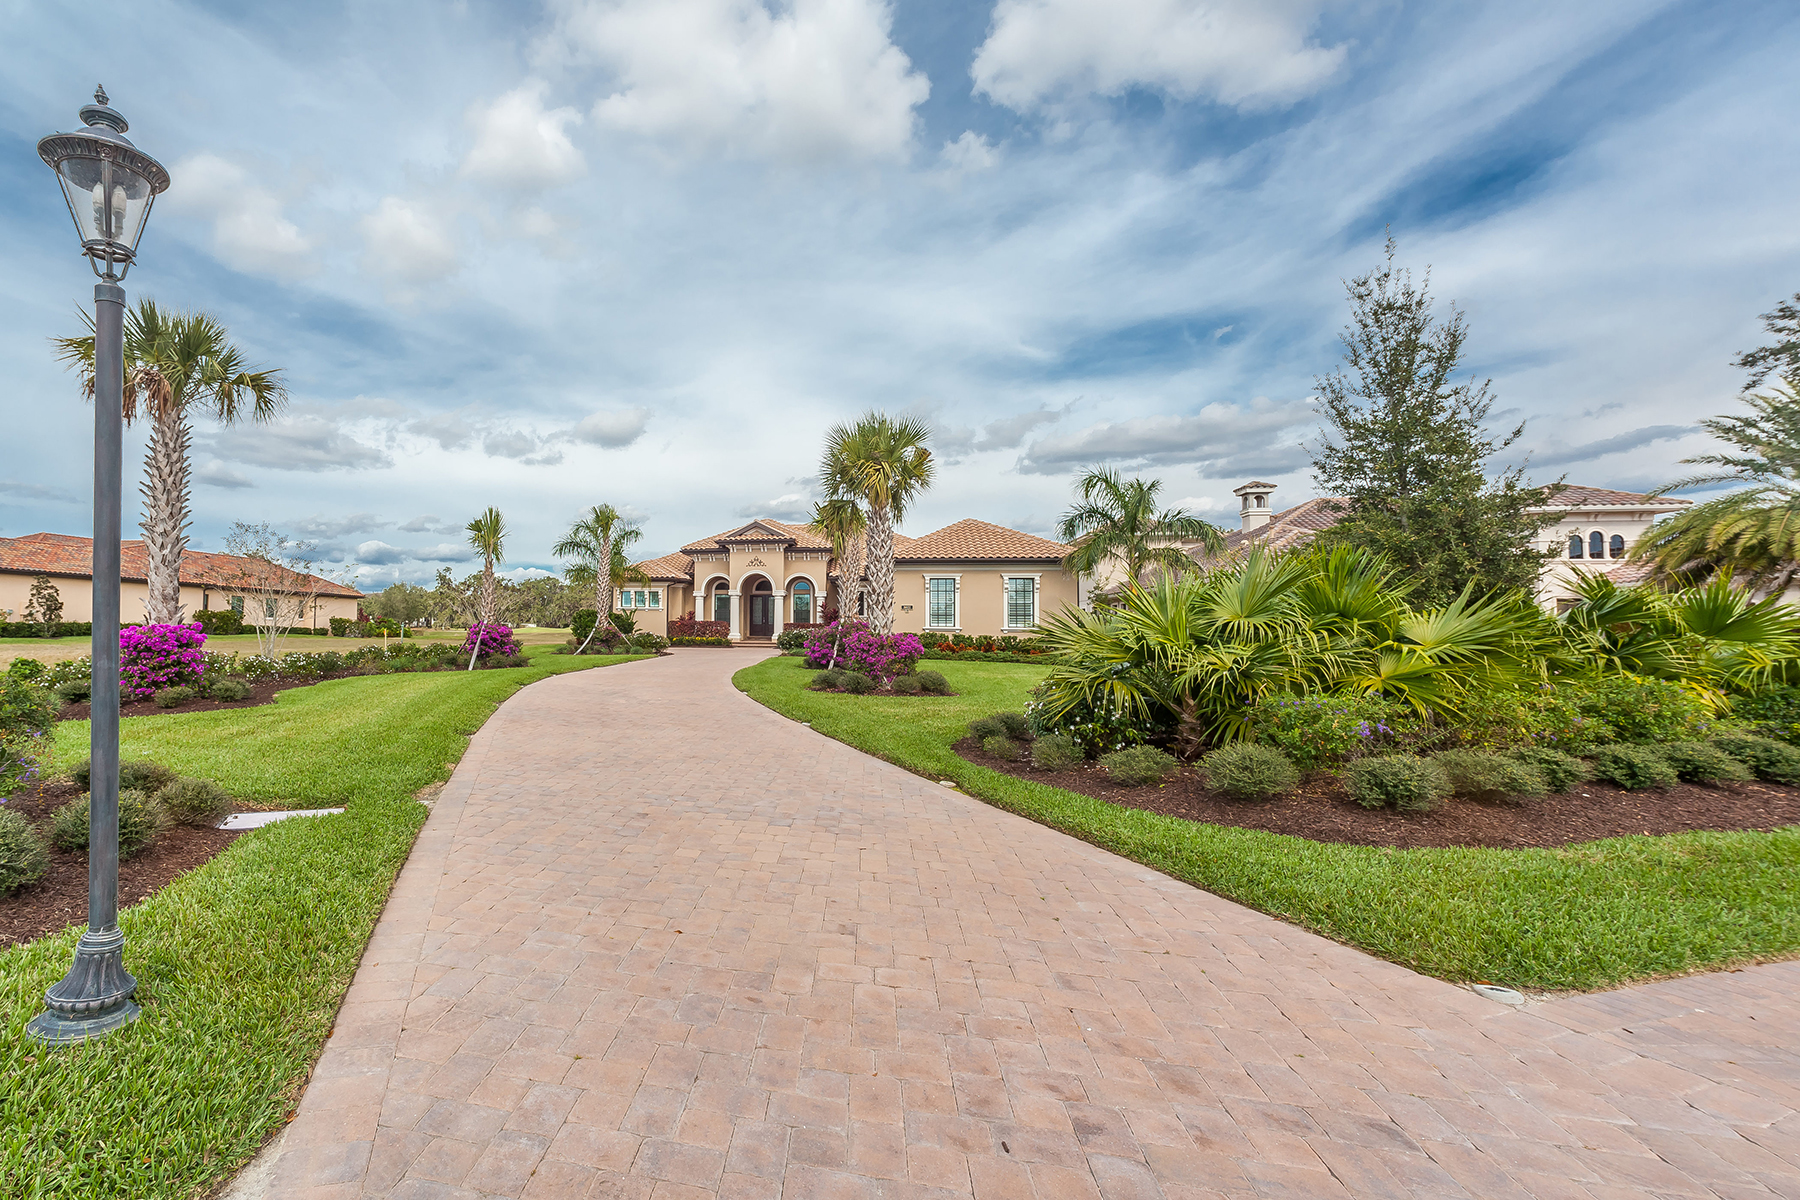 Single Family Home for Sale at FOUNDERS CLUB 3627 Founders Club Dr, Sarasota, Florida 34240 United States